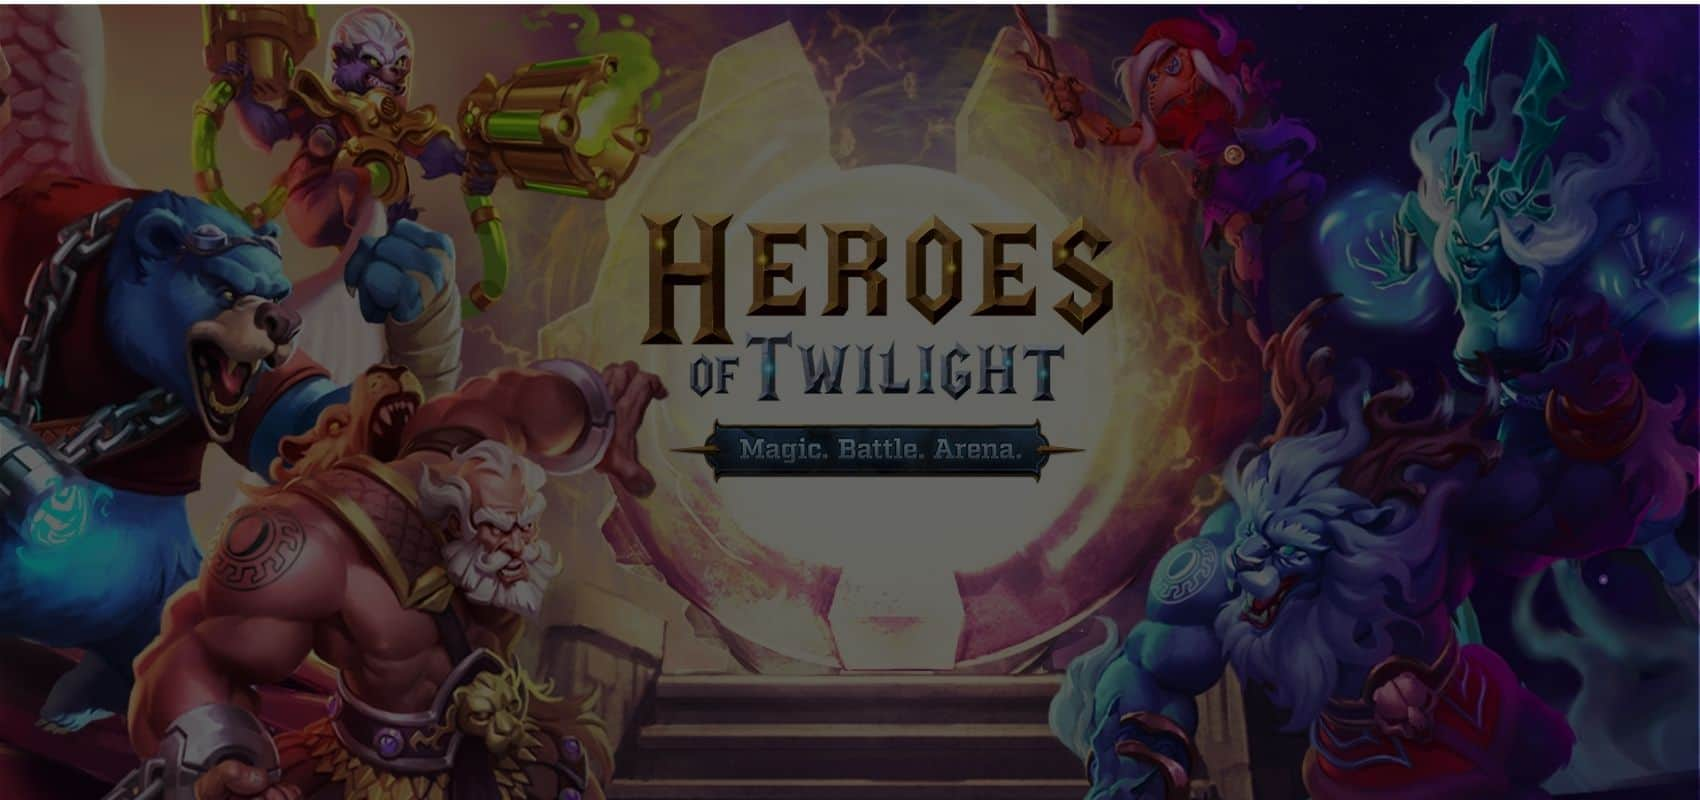 gamigo Reveals New Mobile Turn-Based Strategy Game Heroes of Twilight